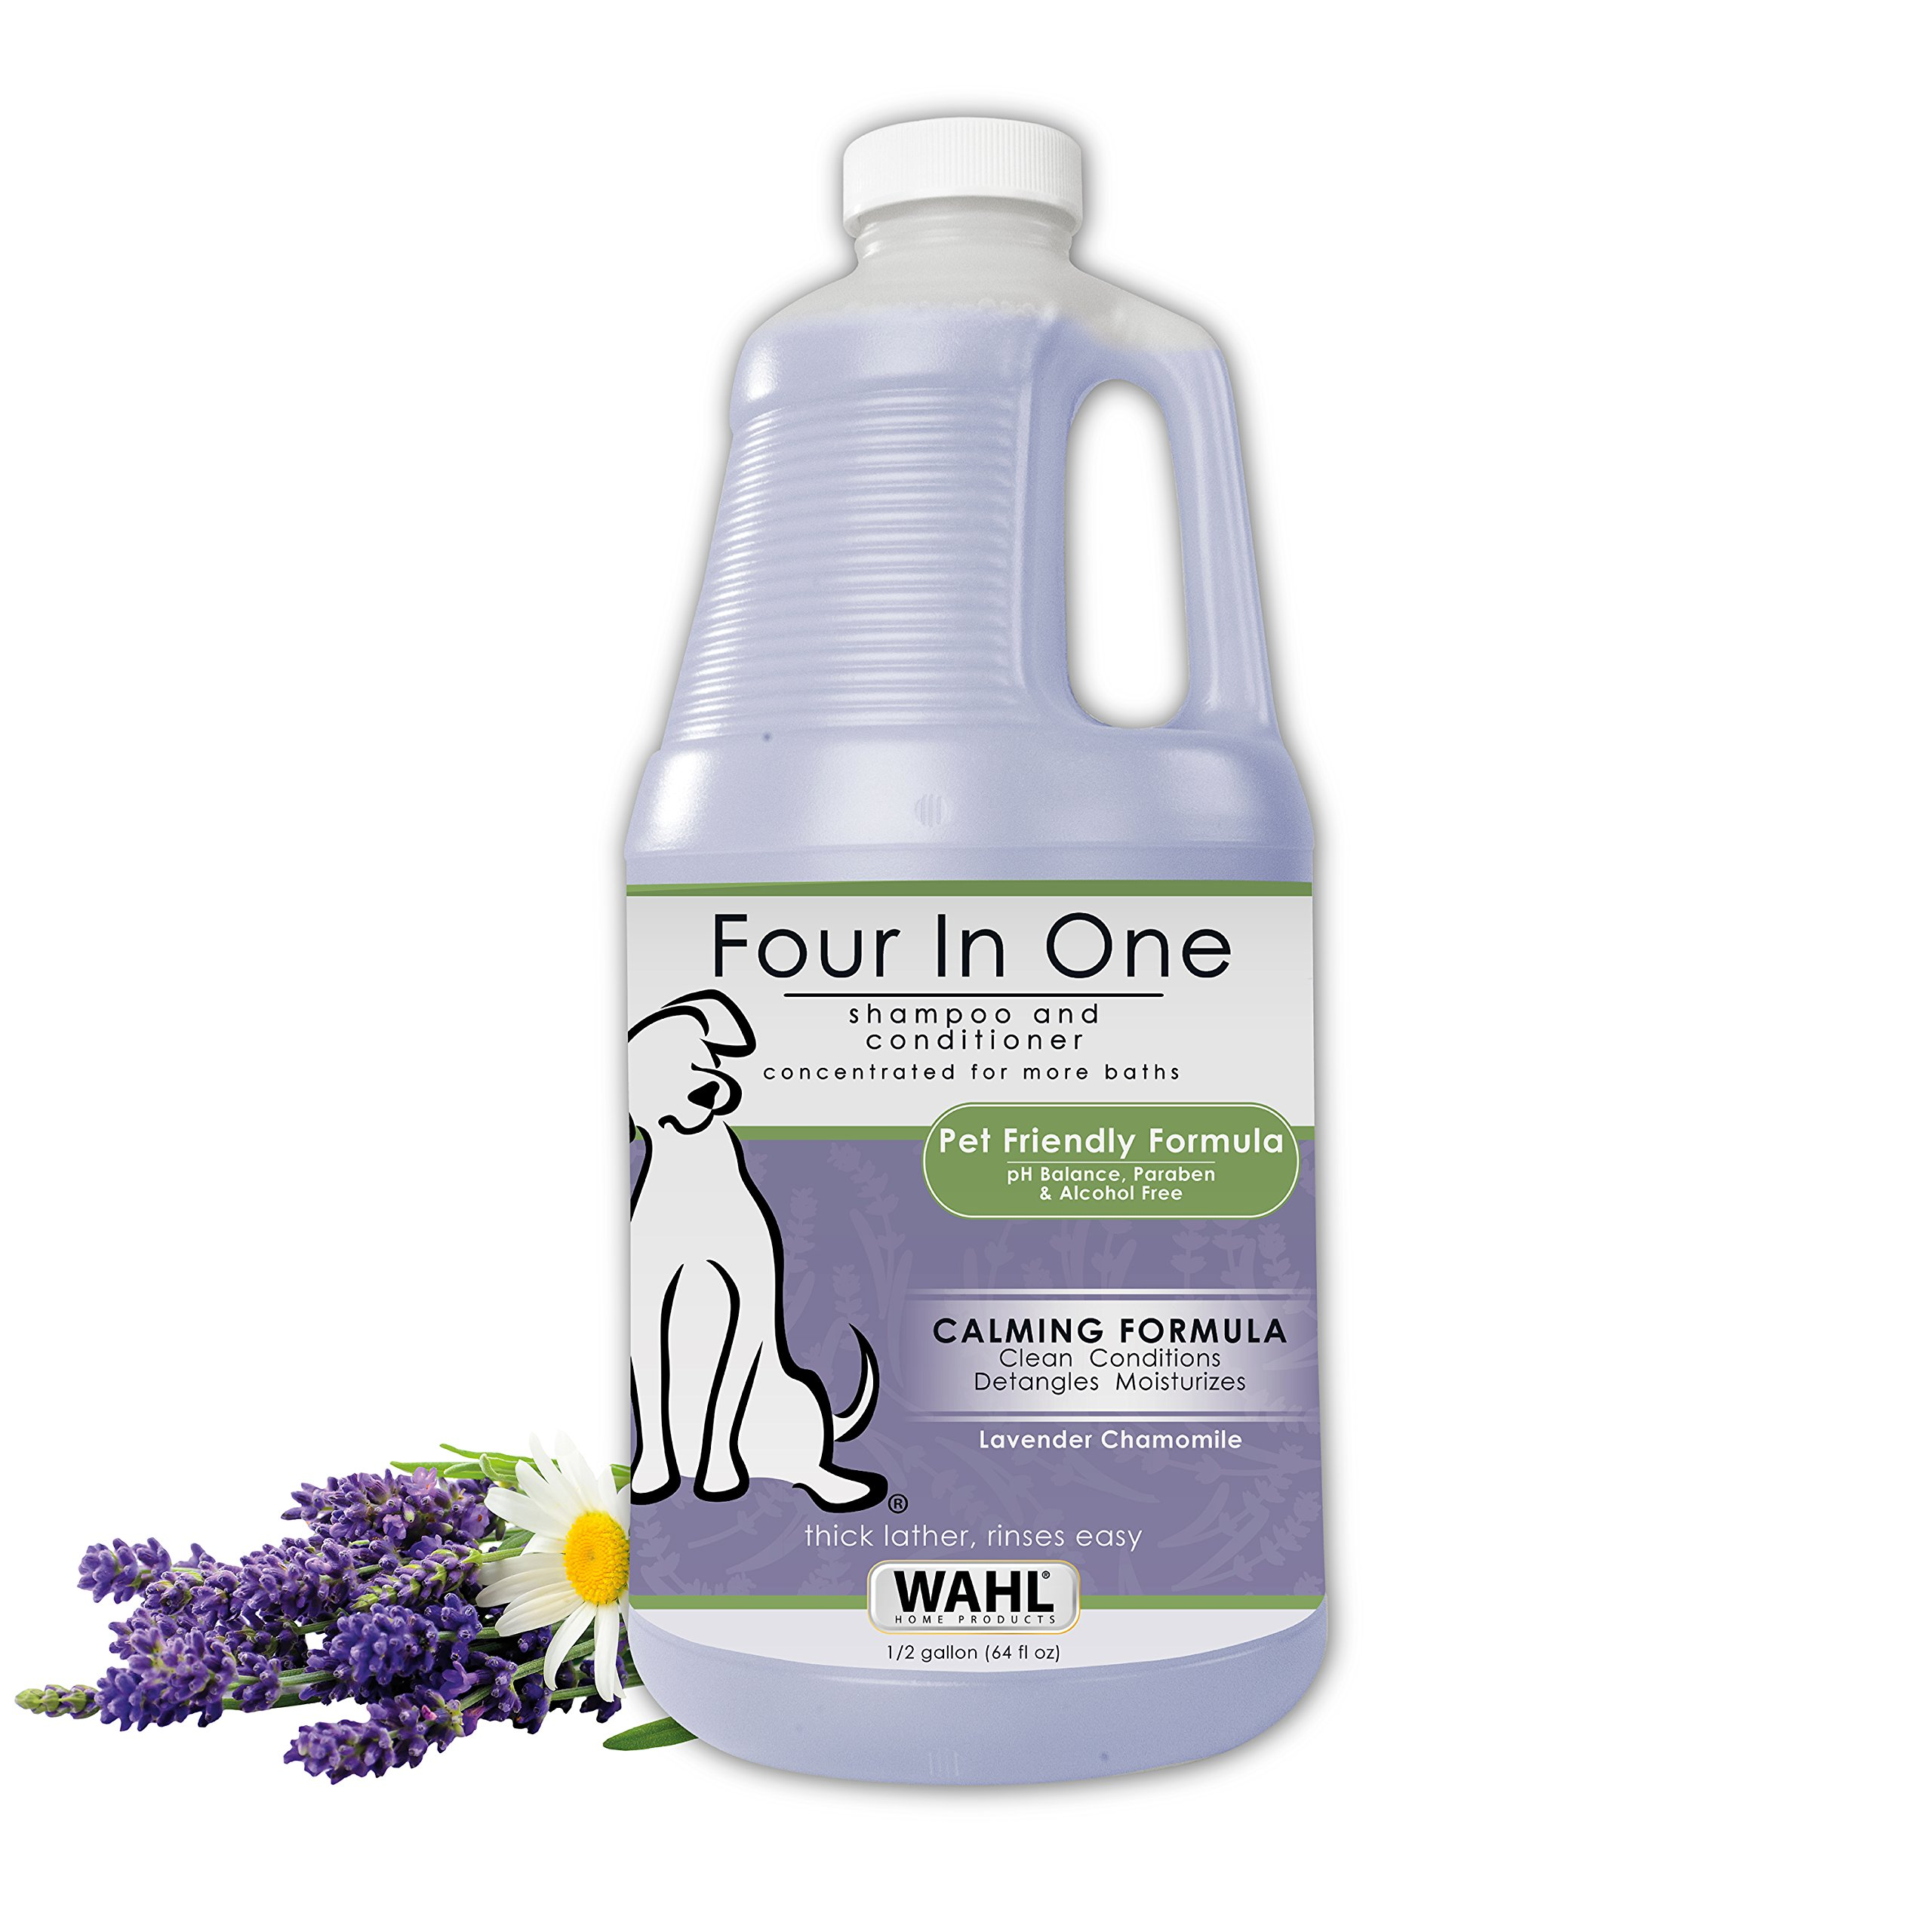 WAHL Pet/Dog 4-in-1 Chamomile Shampoo Lavender 821000-051 Grooming Dog Shampoo to Clean, Condition, Moisturize & Detangle